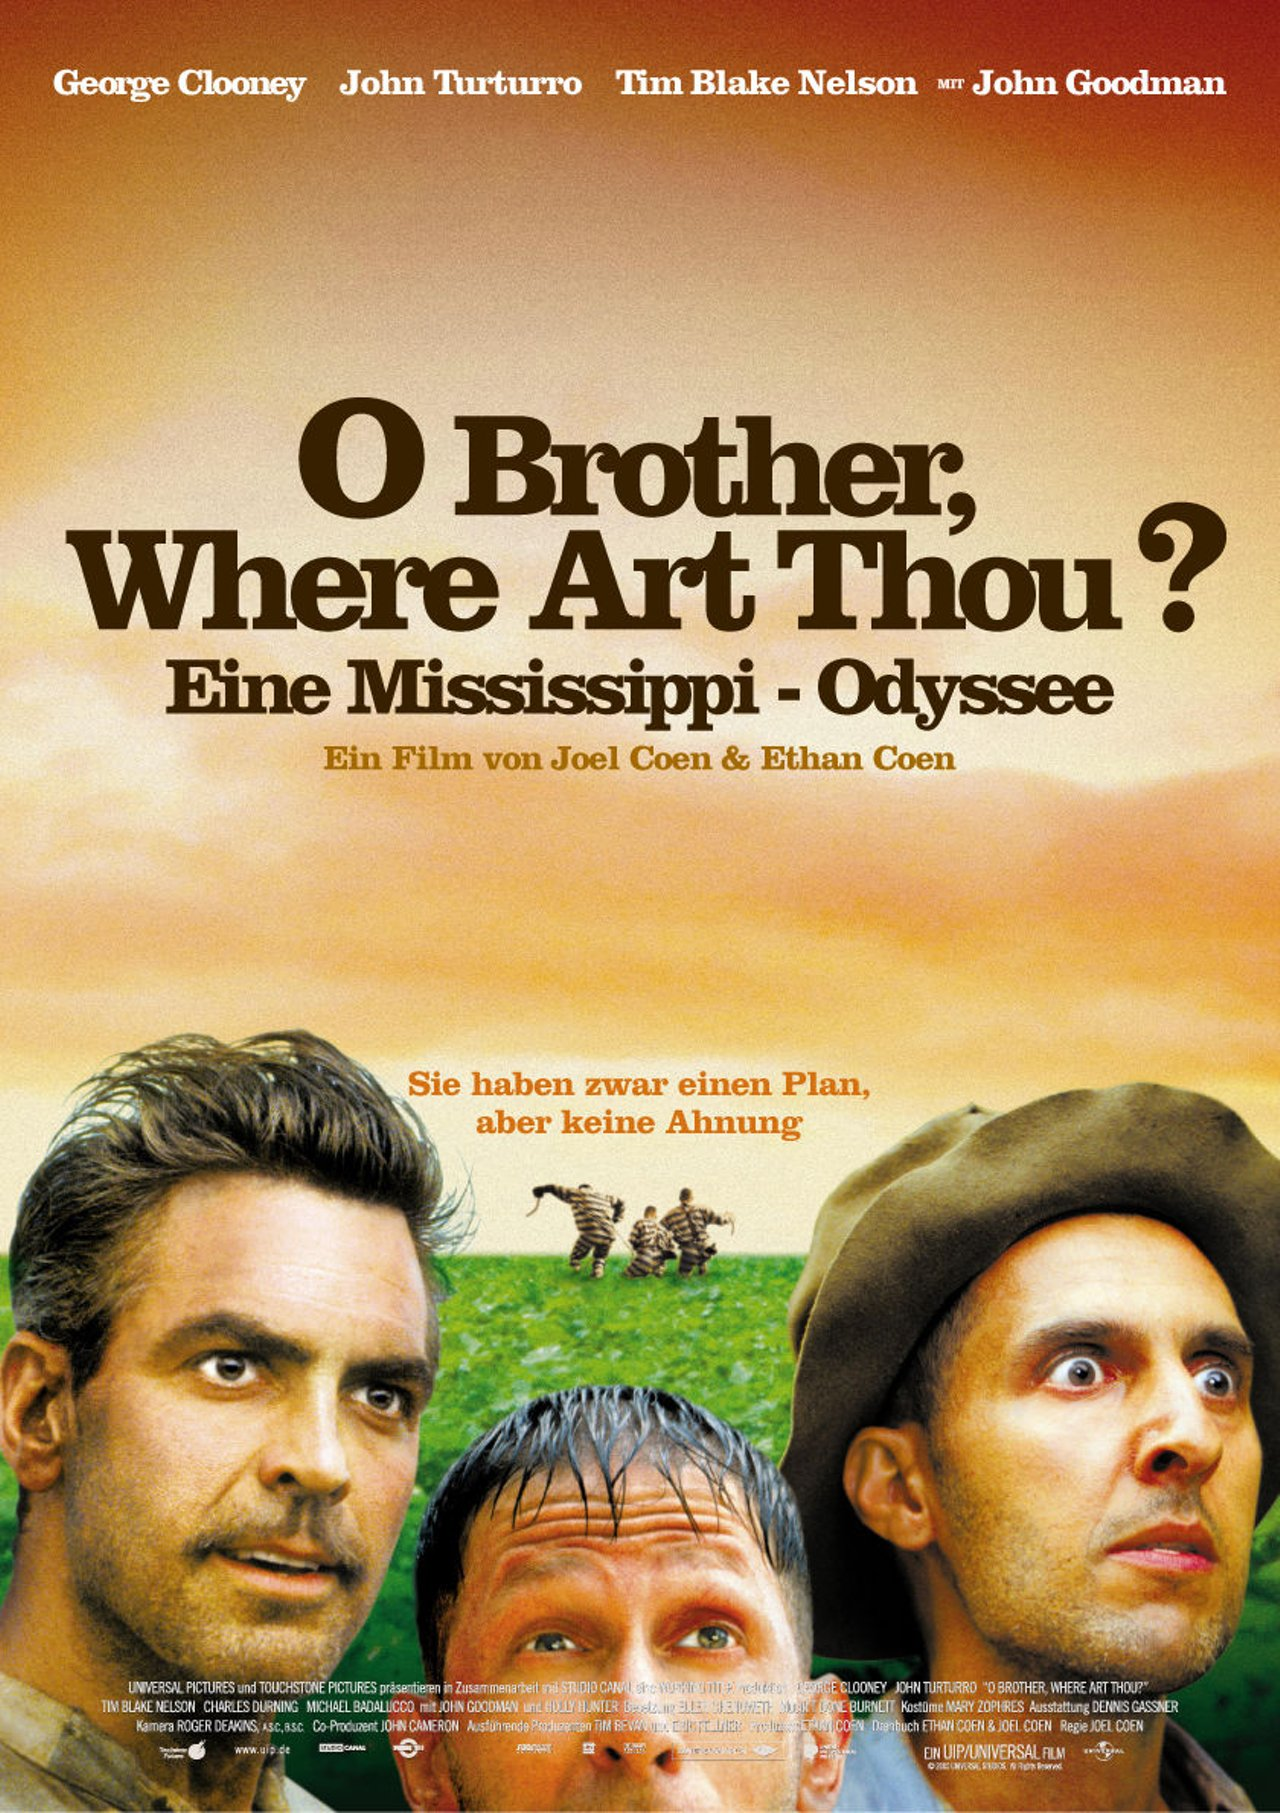 o brother where art thou essays Essay on o brother where art thou 1116 words | 5 pages the coen brothers movie o brother, where art thou is an exciting story, full of adventure and comedy, and if nothing but its comedic and entertainment value were taken into account, it would still be considered a great film.